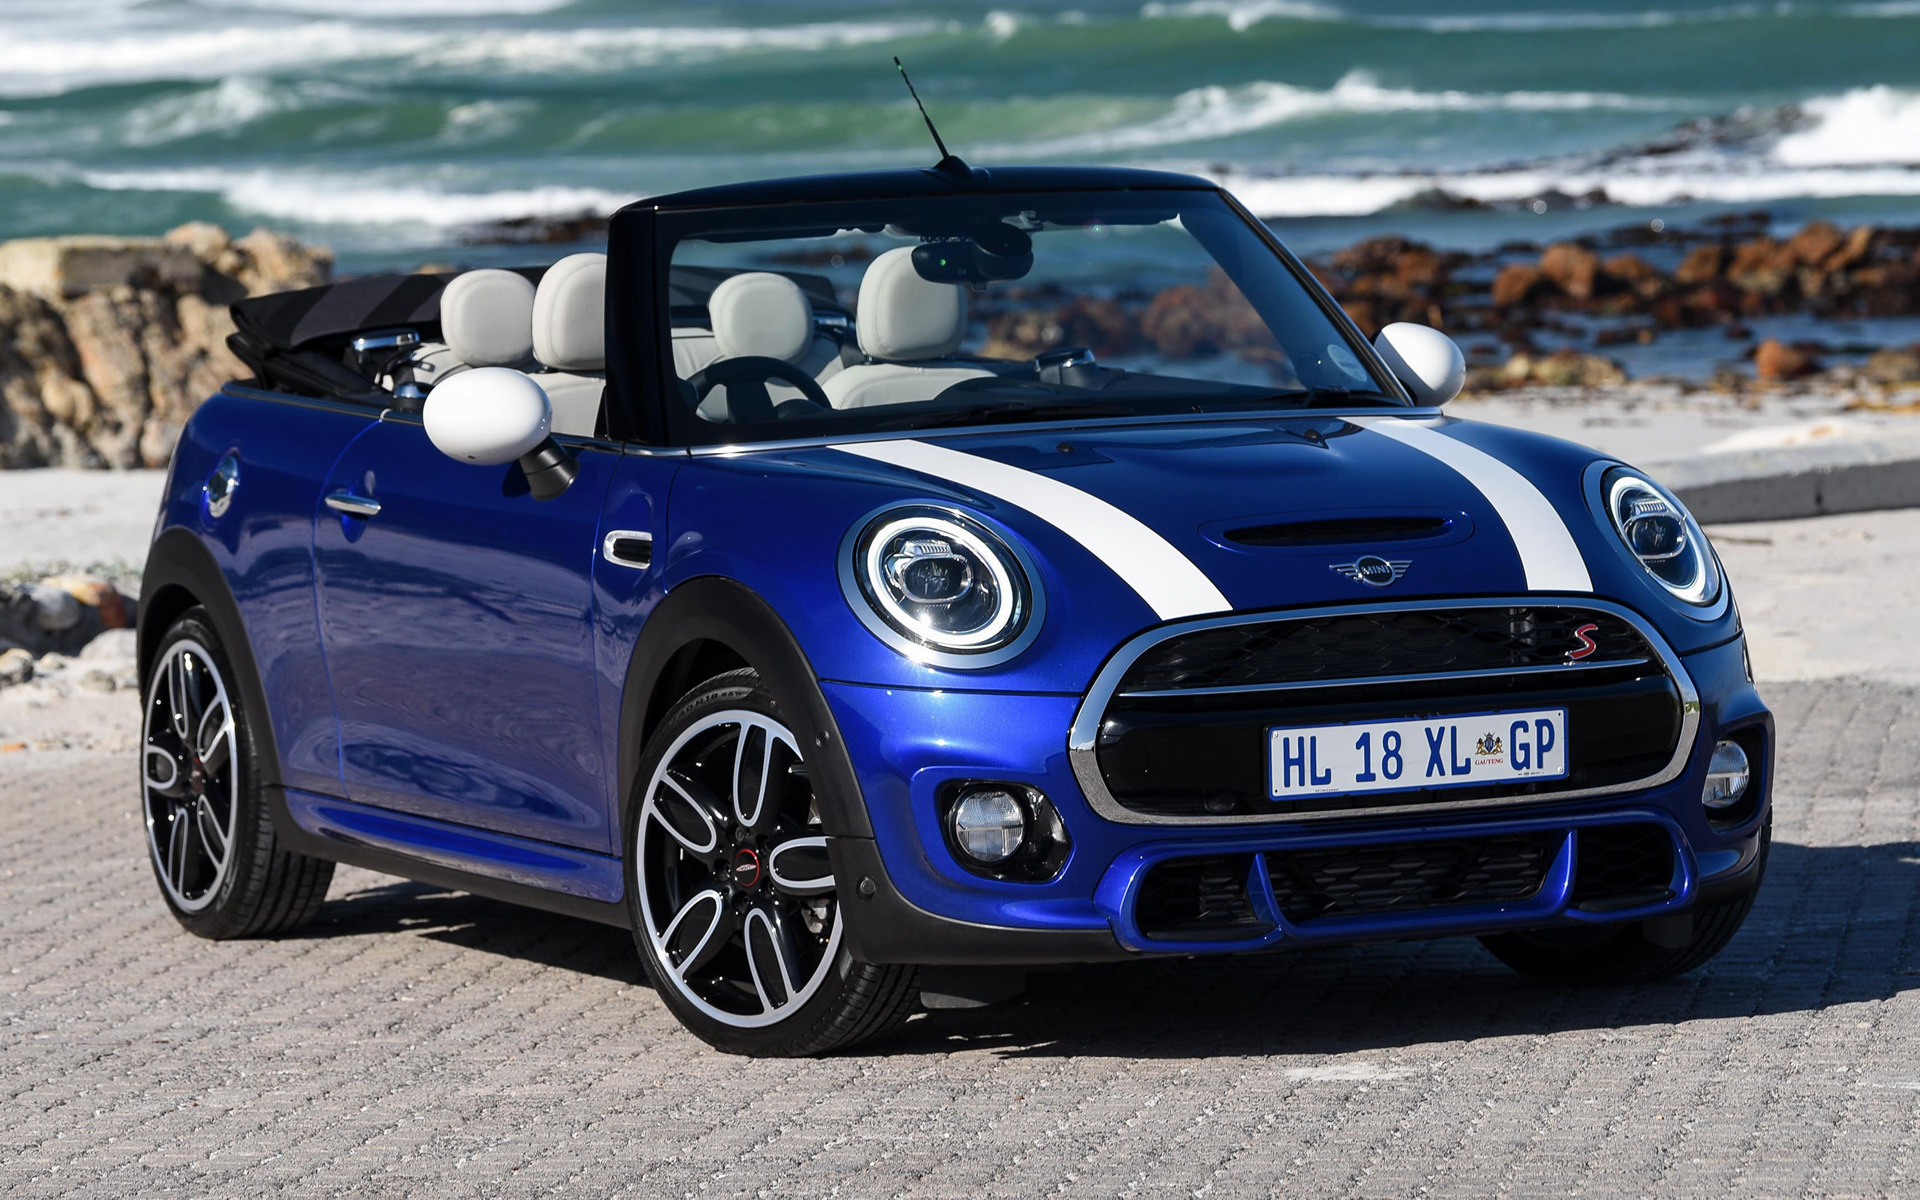 2018 Mini Cooper S Convertible Jcw Package Za Wallpapers And Hd